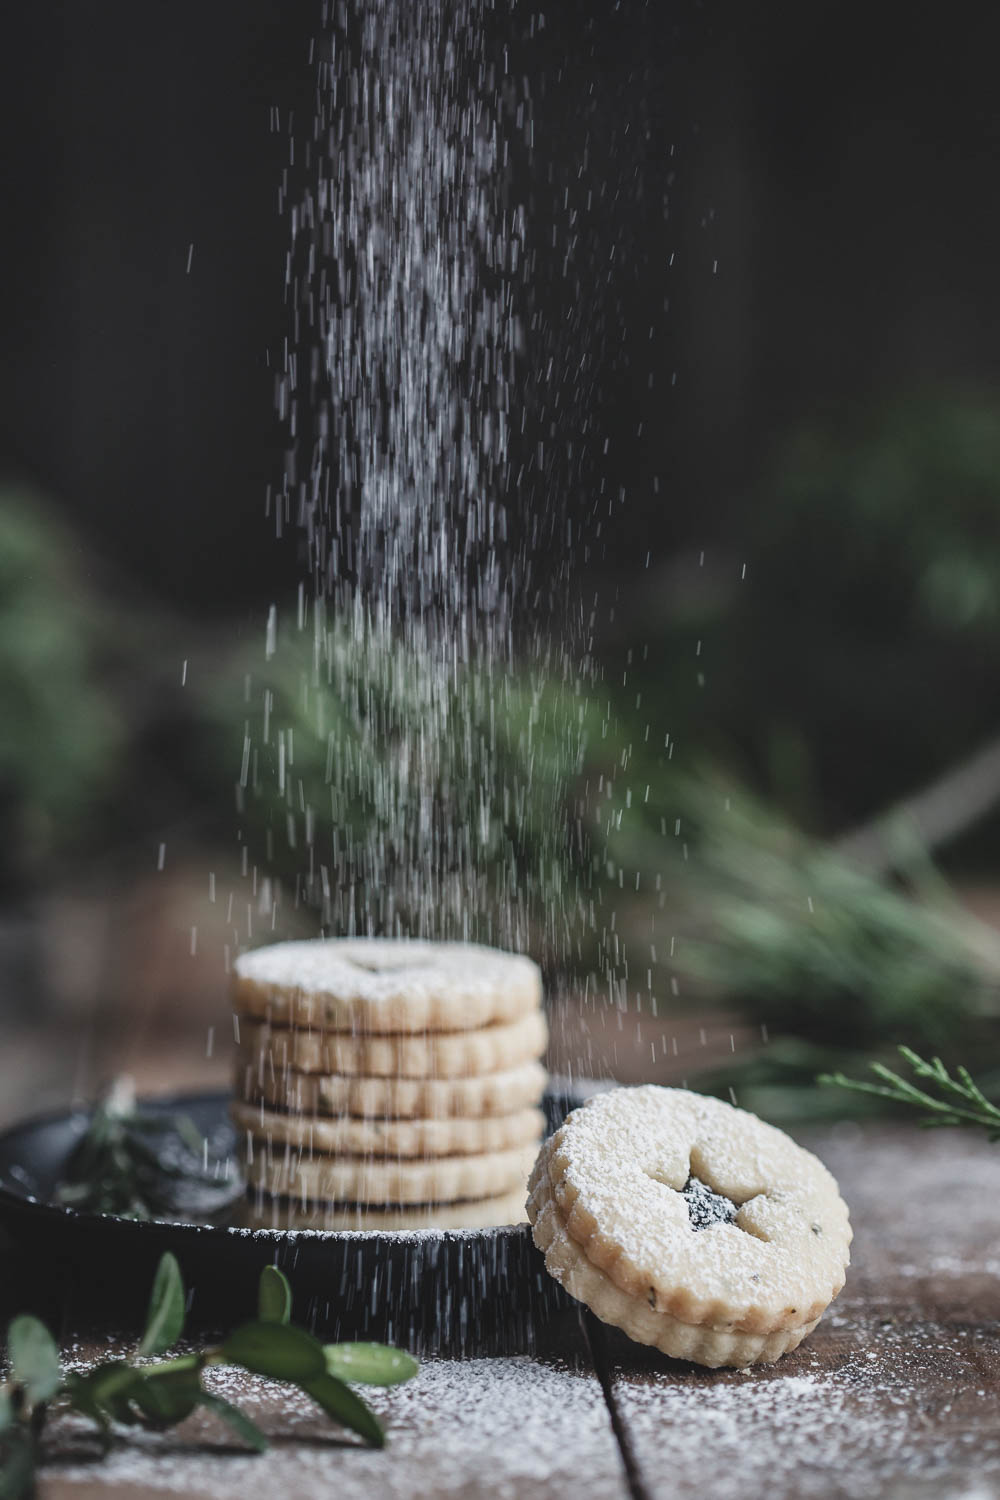 A dusting of powdered sugar completes the rosemary shortbread Linzer cookies with blueberry jam